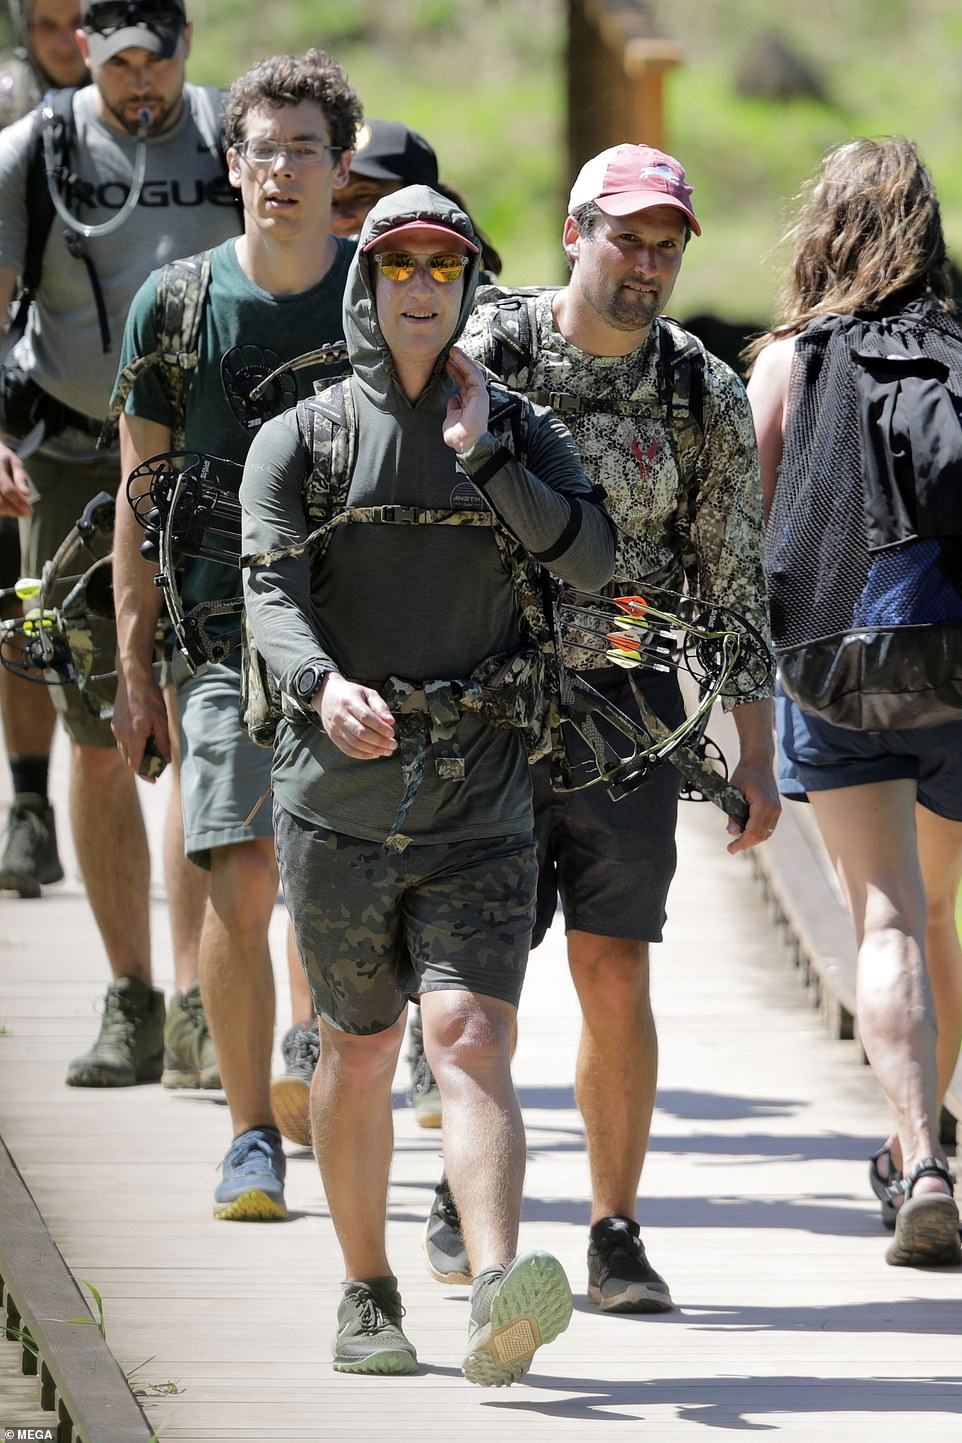 Zuckerberg and his friends looked ready for action as they set off on the 11-mile trail